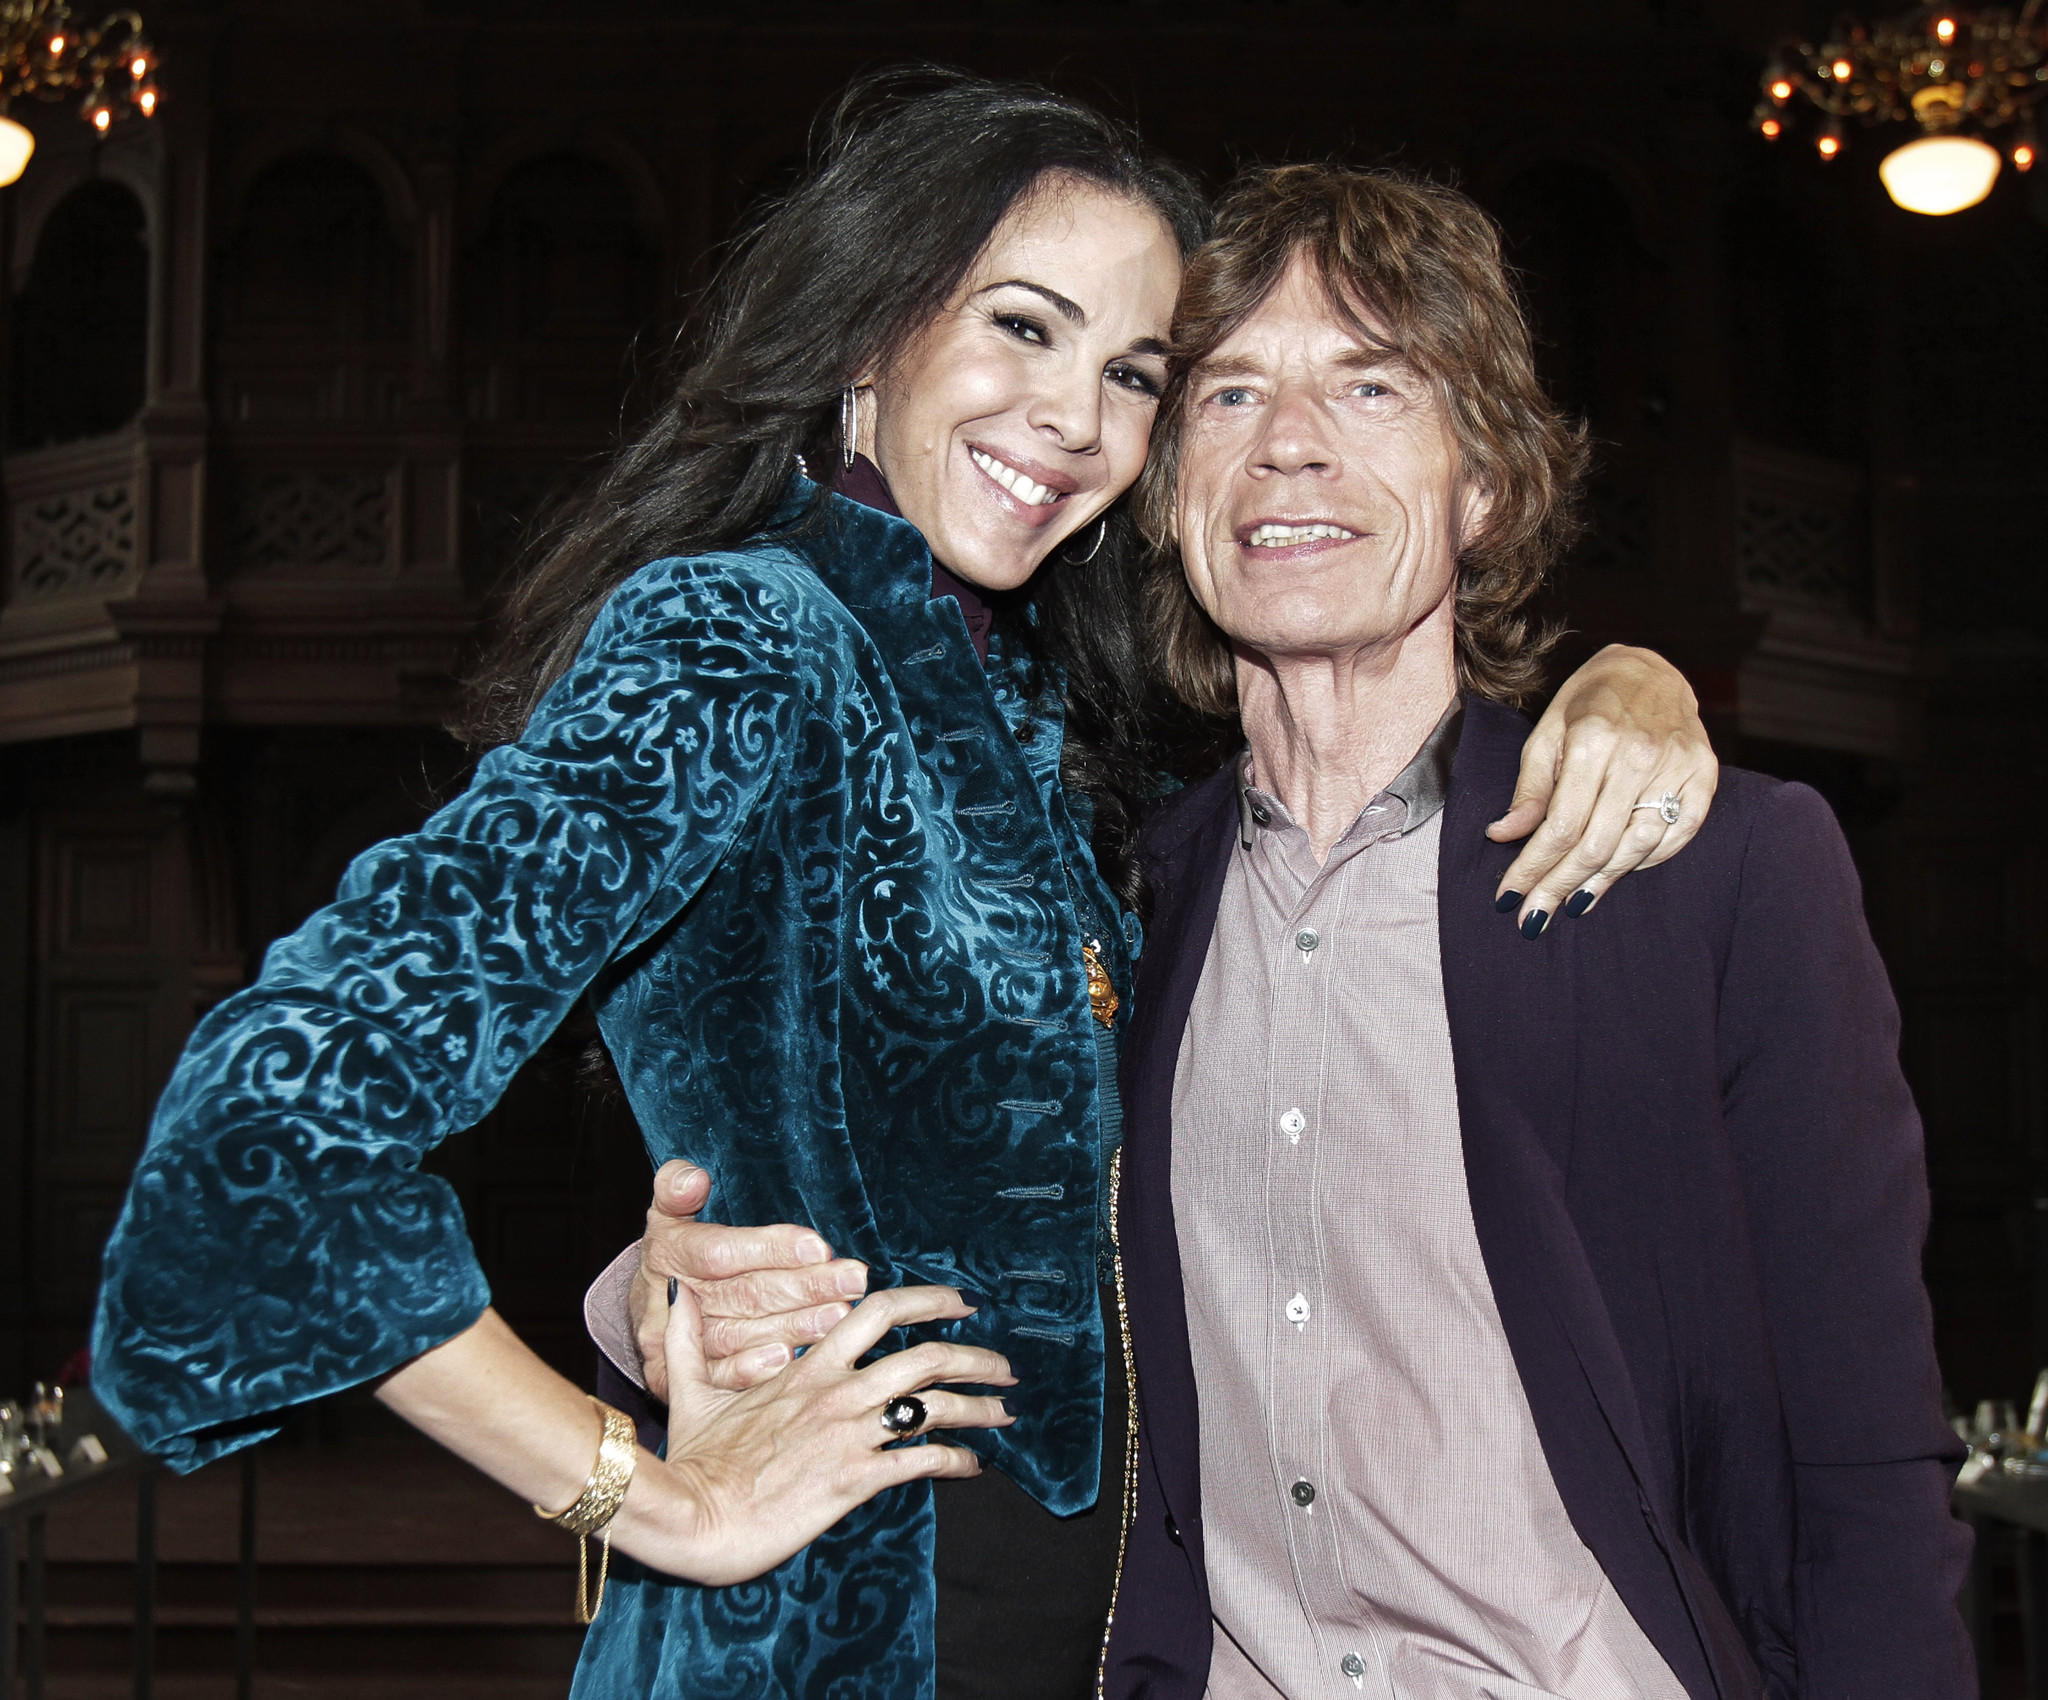 Designer L'Wren Scott is shown with her longtime boyfriend, the Rolling Stones' Mick Jagger. Scott was found dead in New York on Monday.